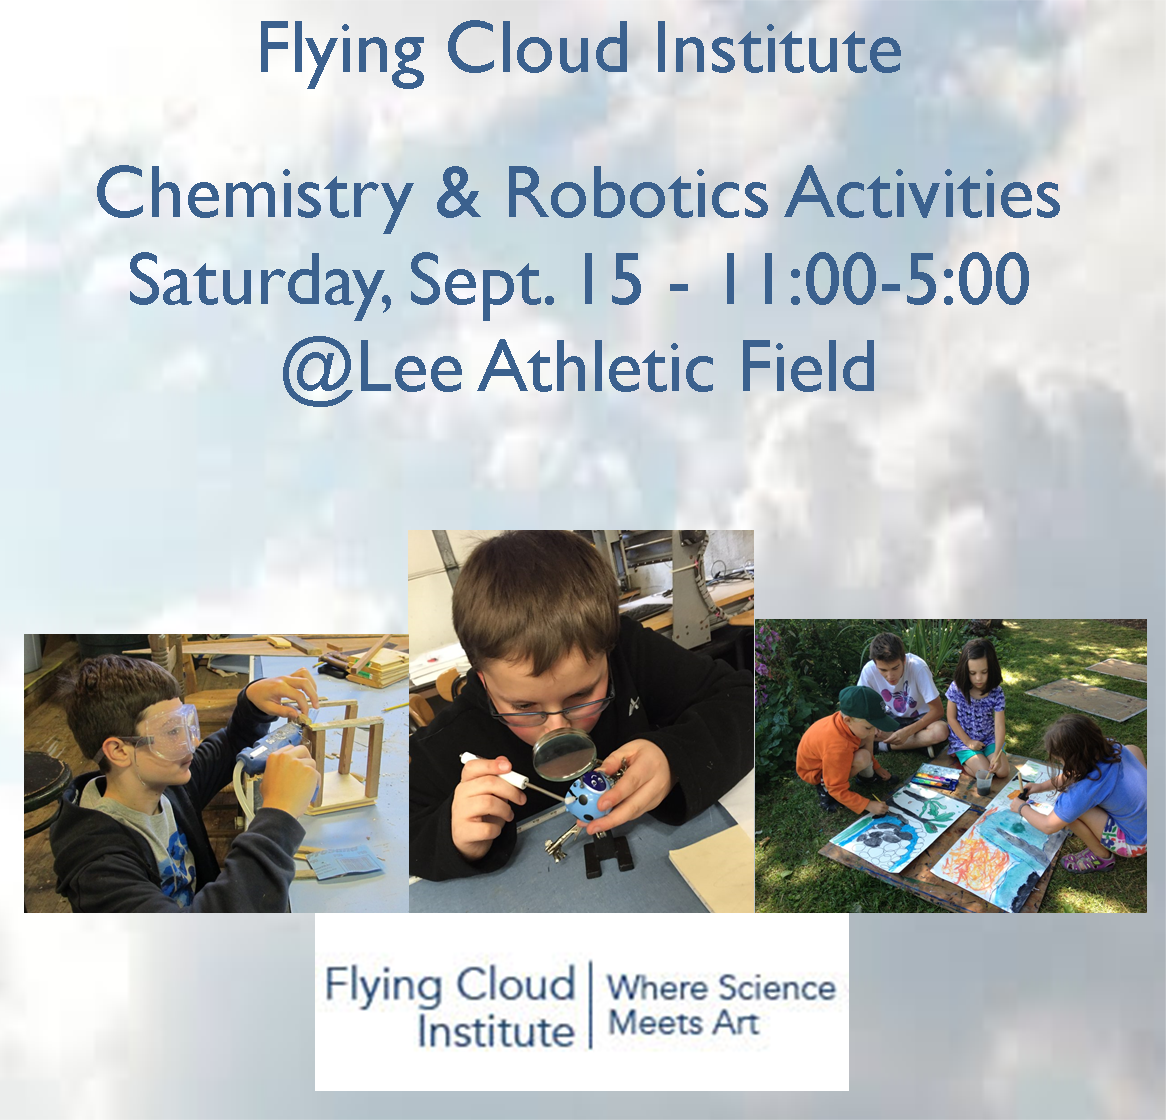 Flying Cloud Institute